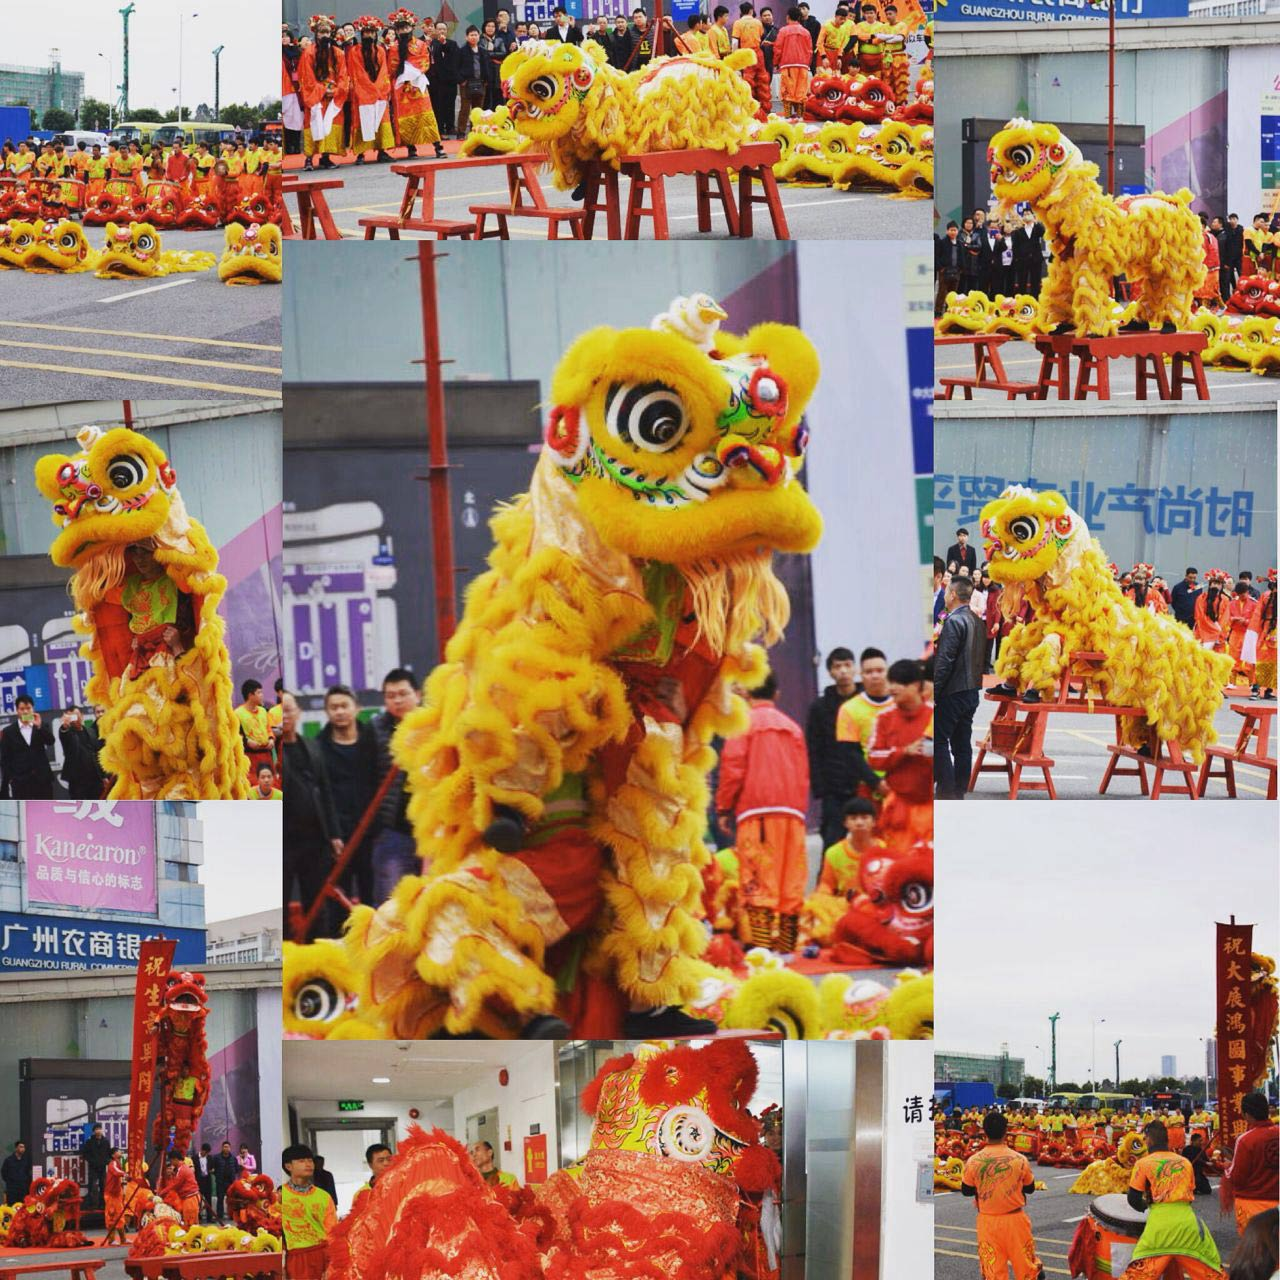 Lion Dance for the new year beginning work, and it means everything good for the coming year.